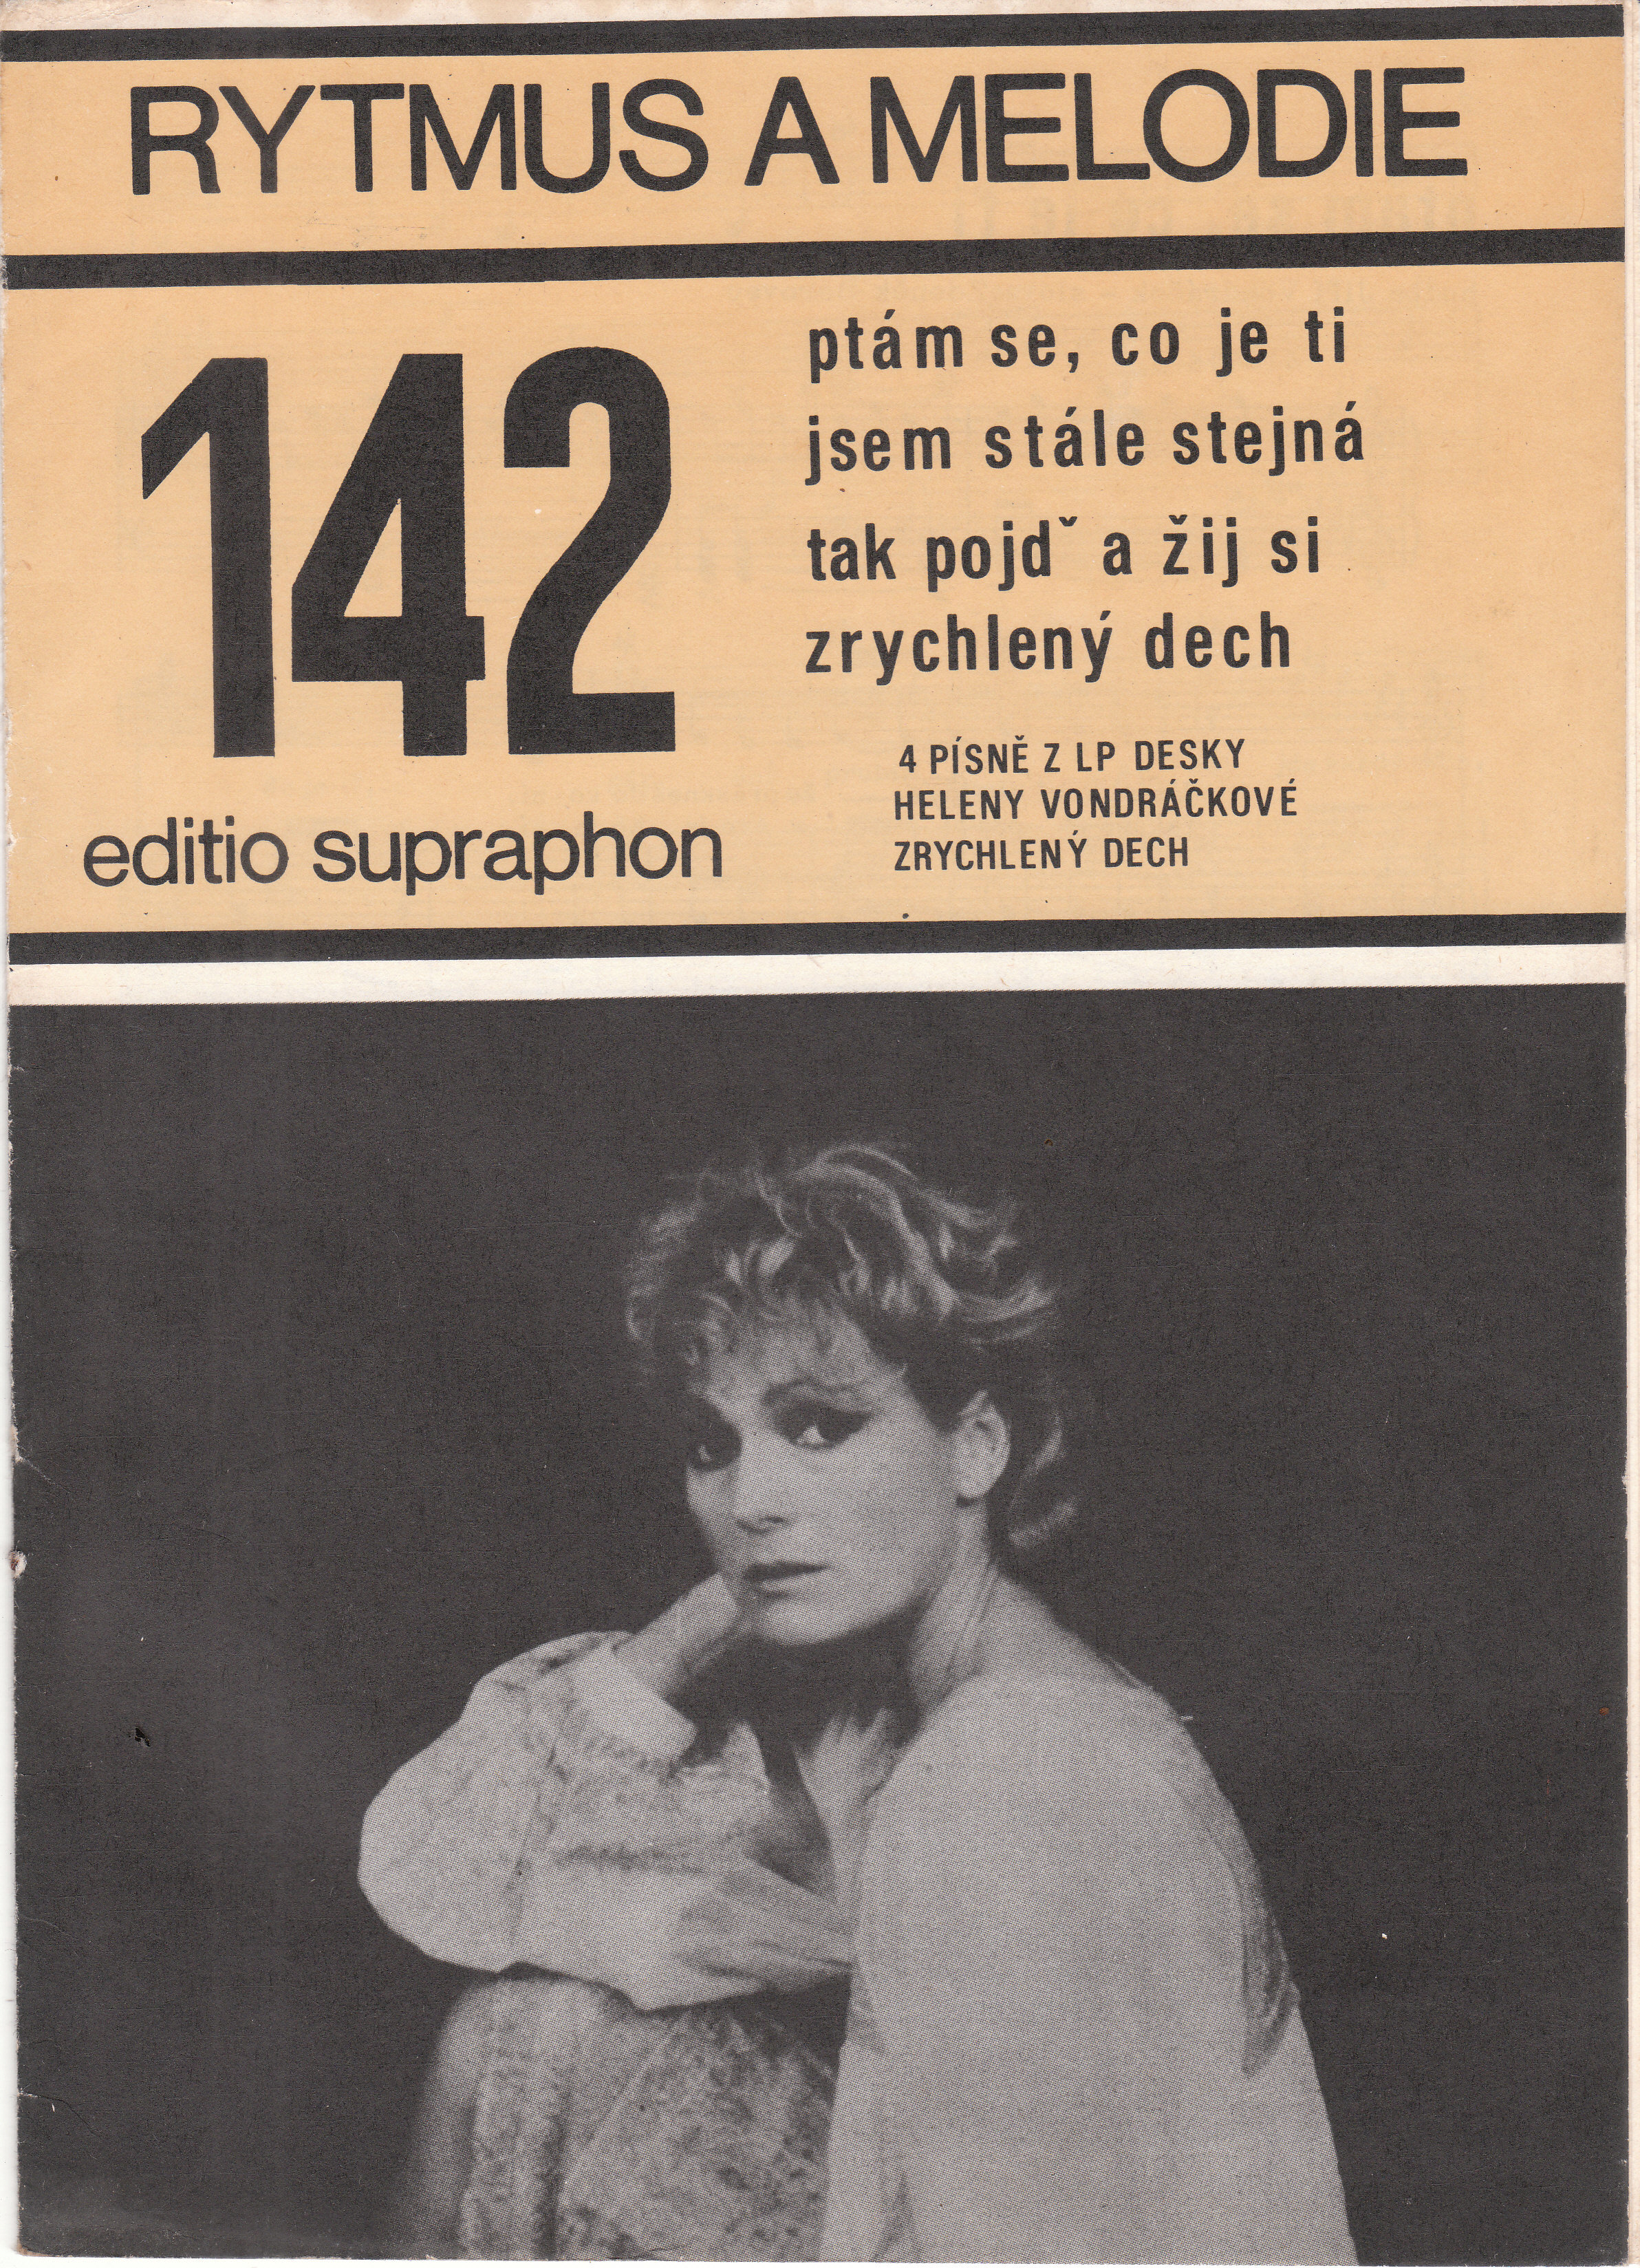 1983-Rytmus a melodie 142